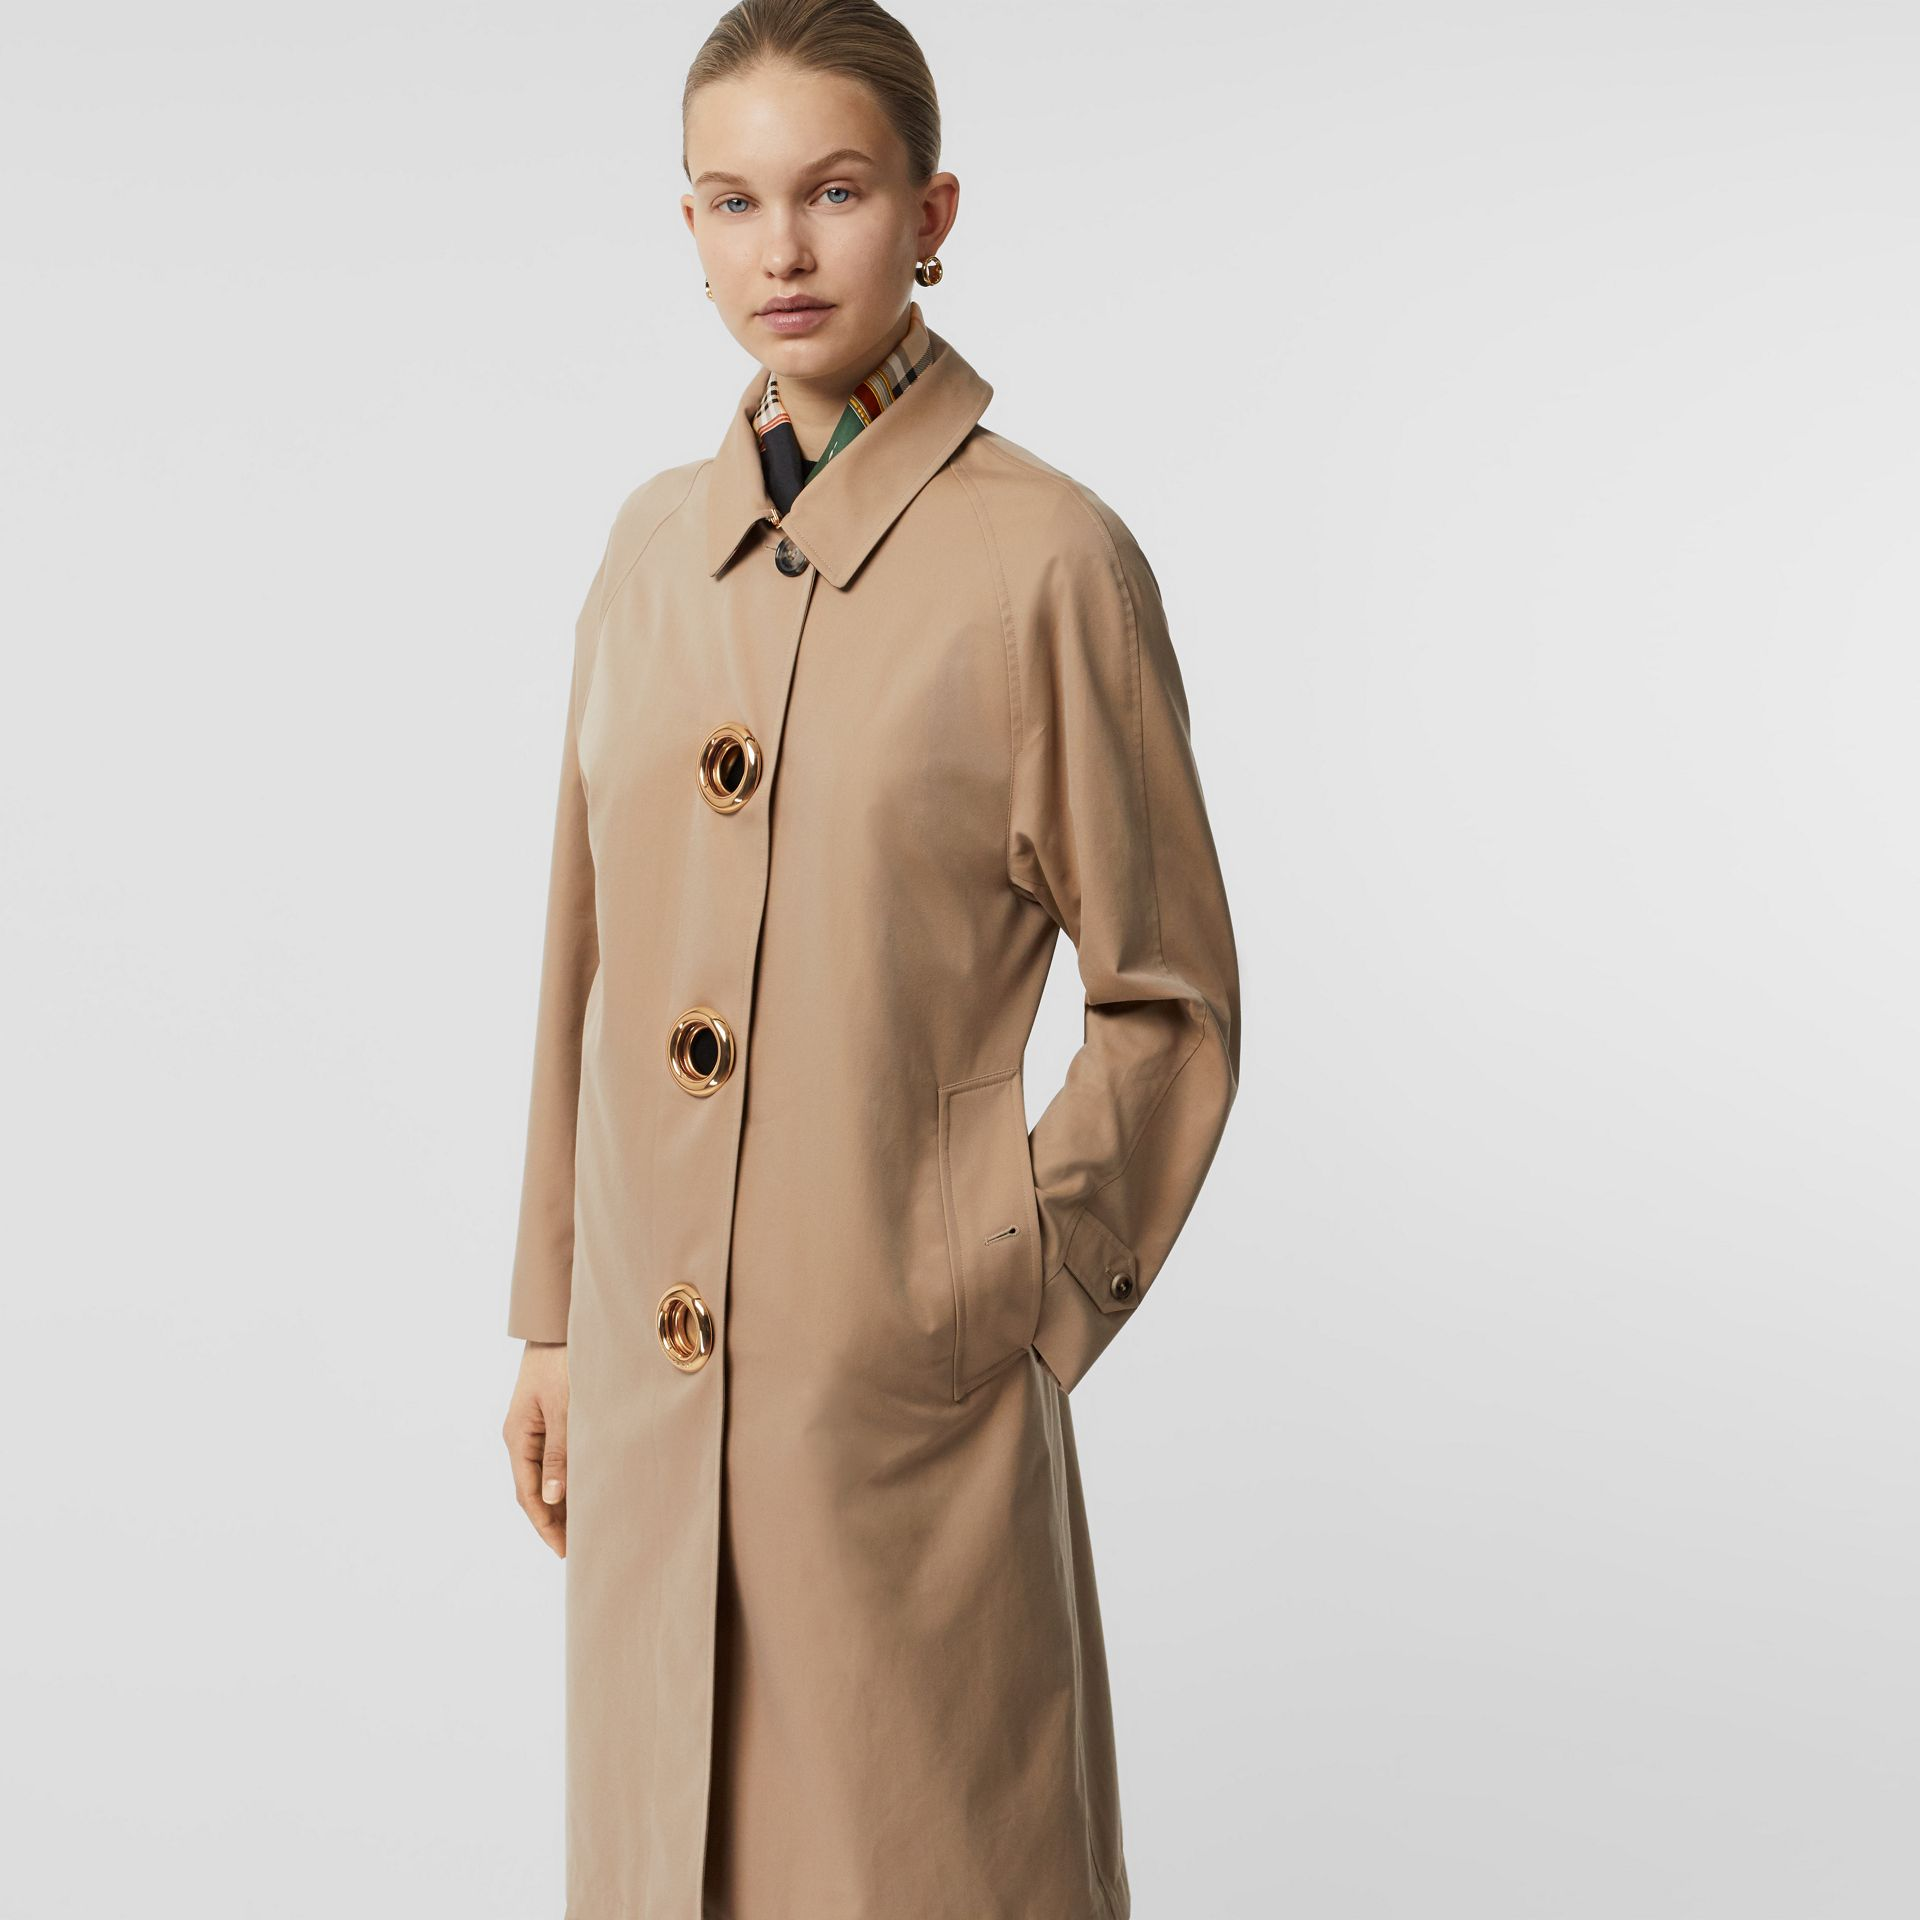 Grommet Detail Cotton Gabardine Car Coat in Honey - Women | Burberry Singapore - gallery image 6